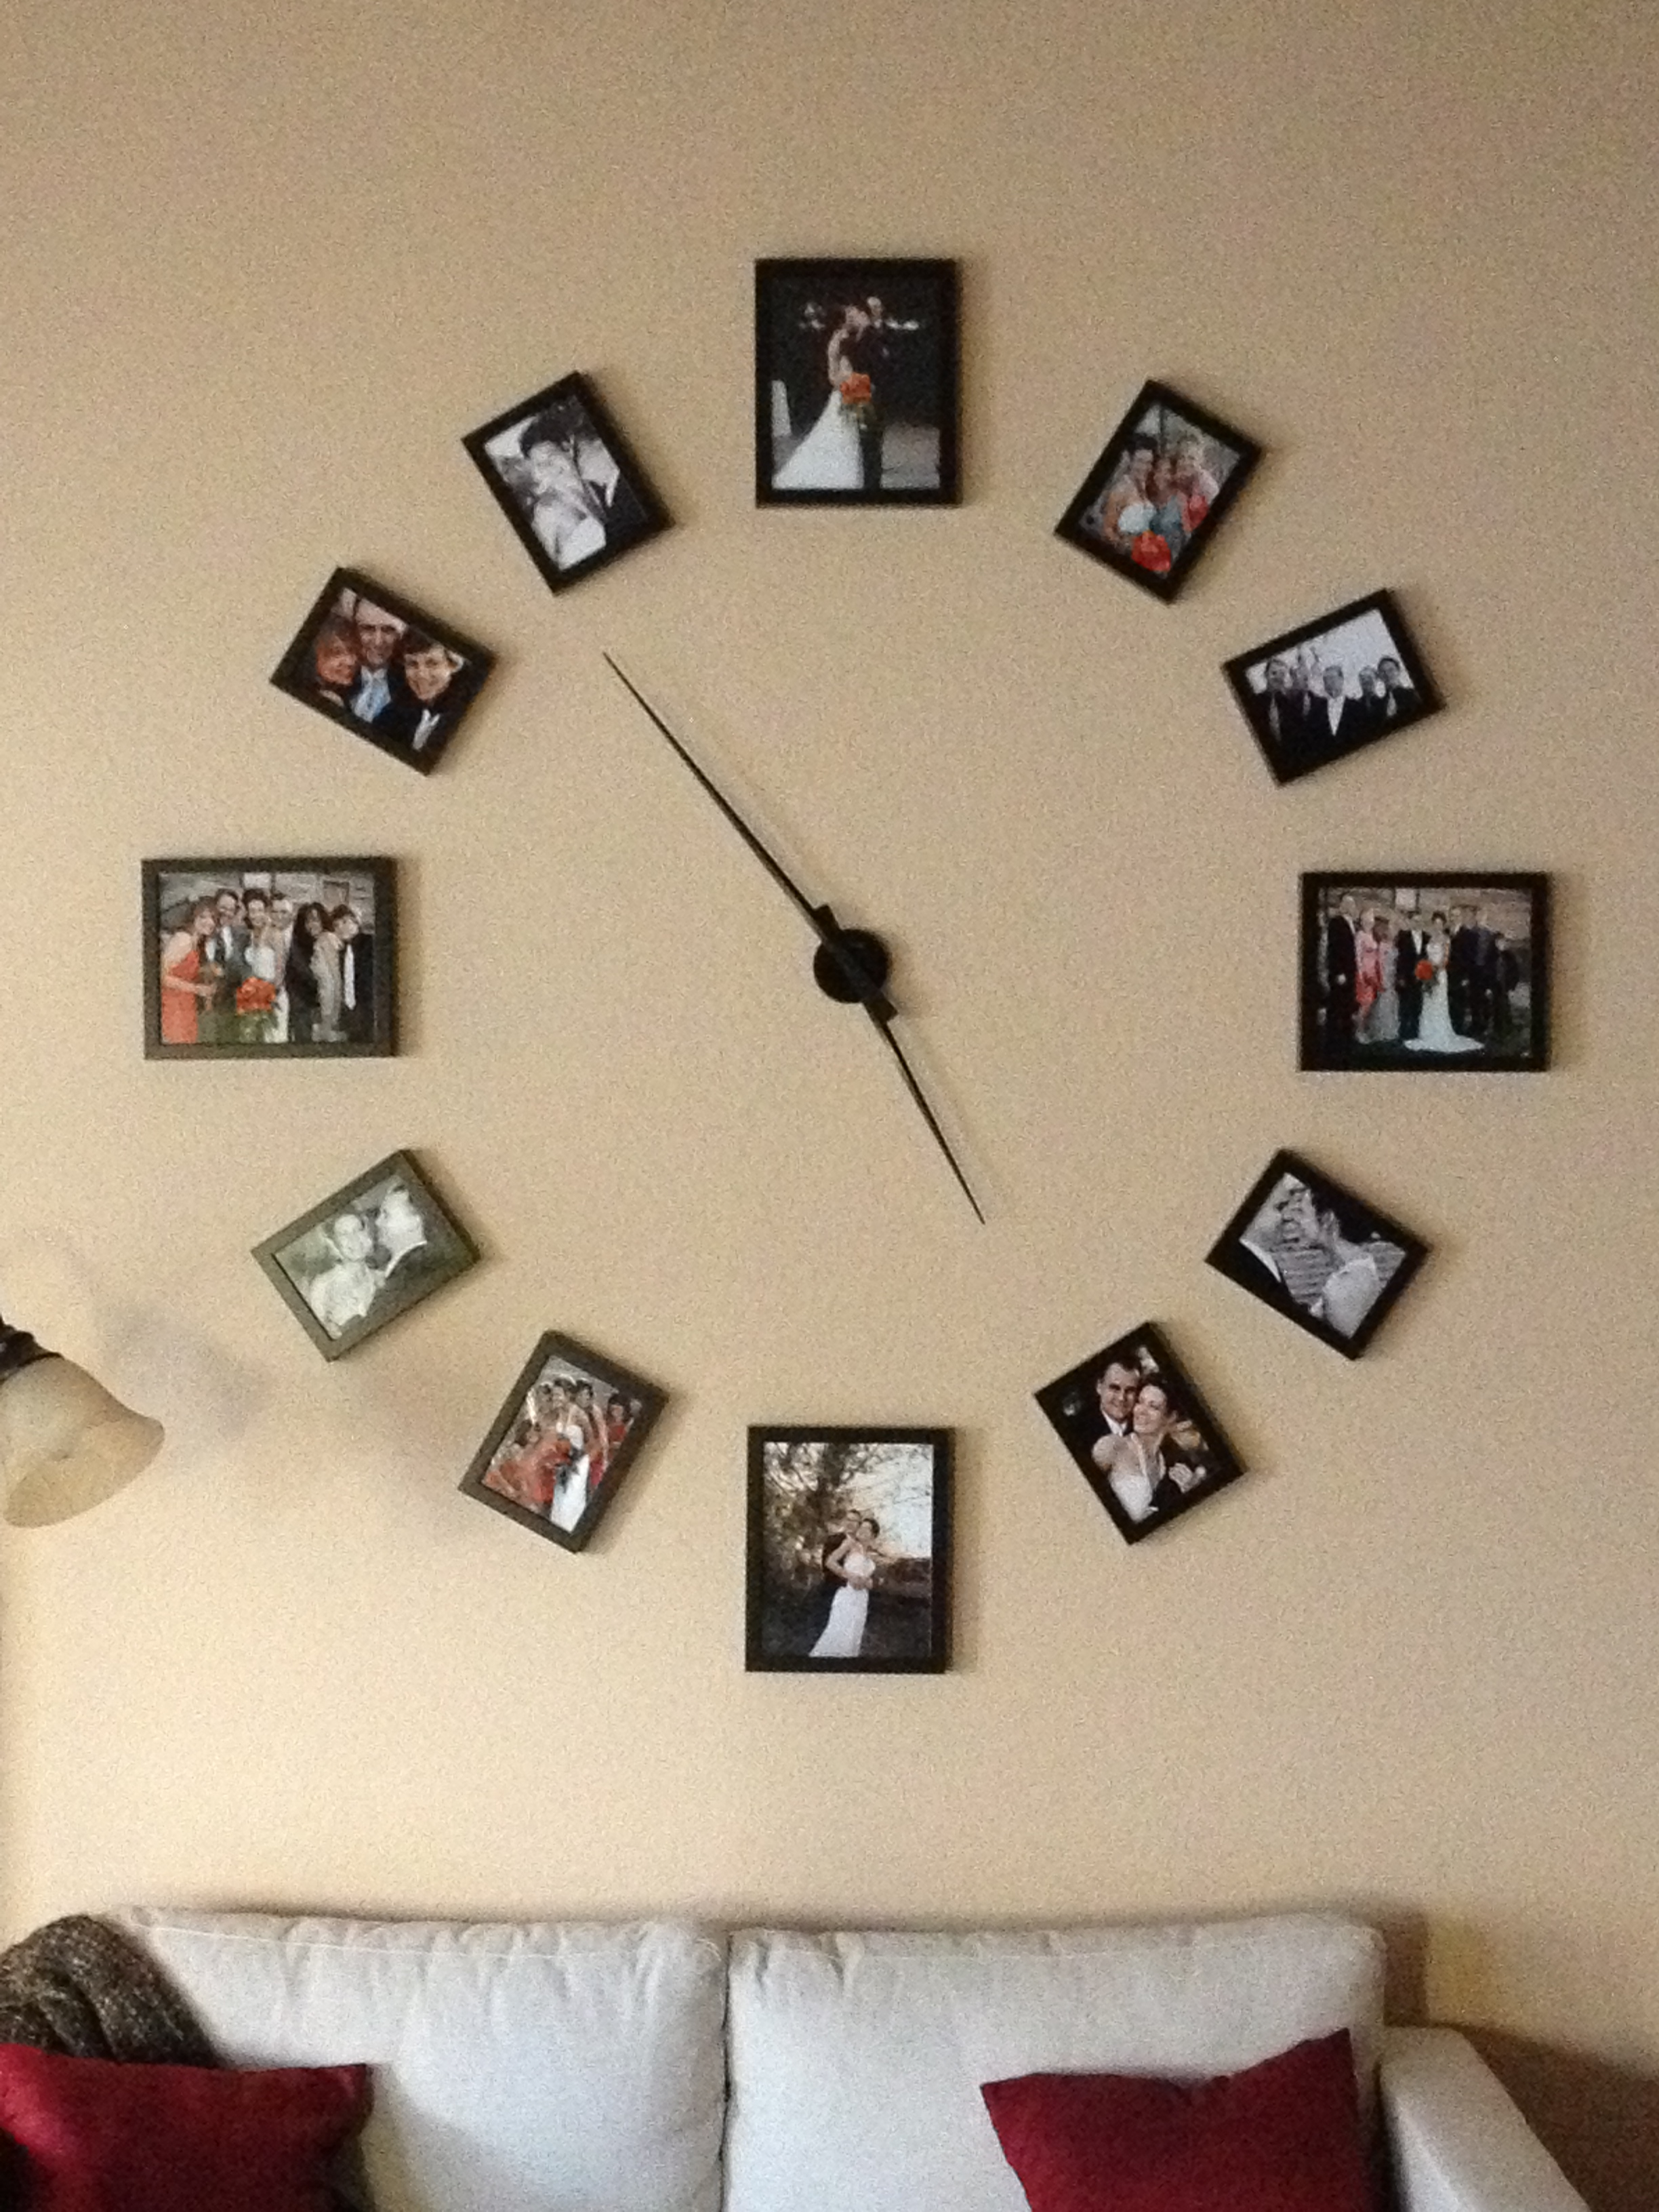 Cool Clock Hands Cool Wall Clock Photo Display